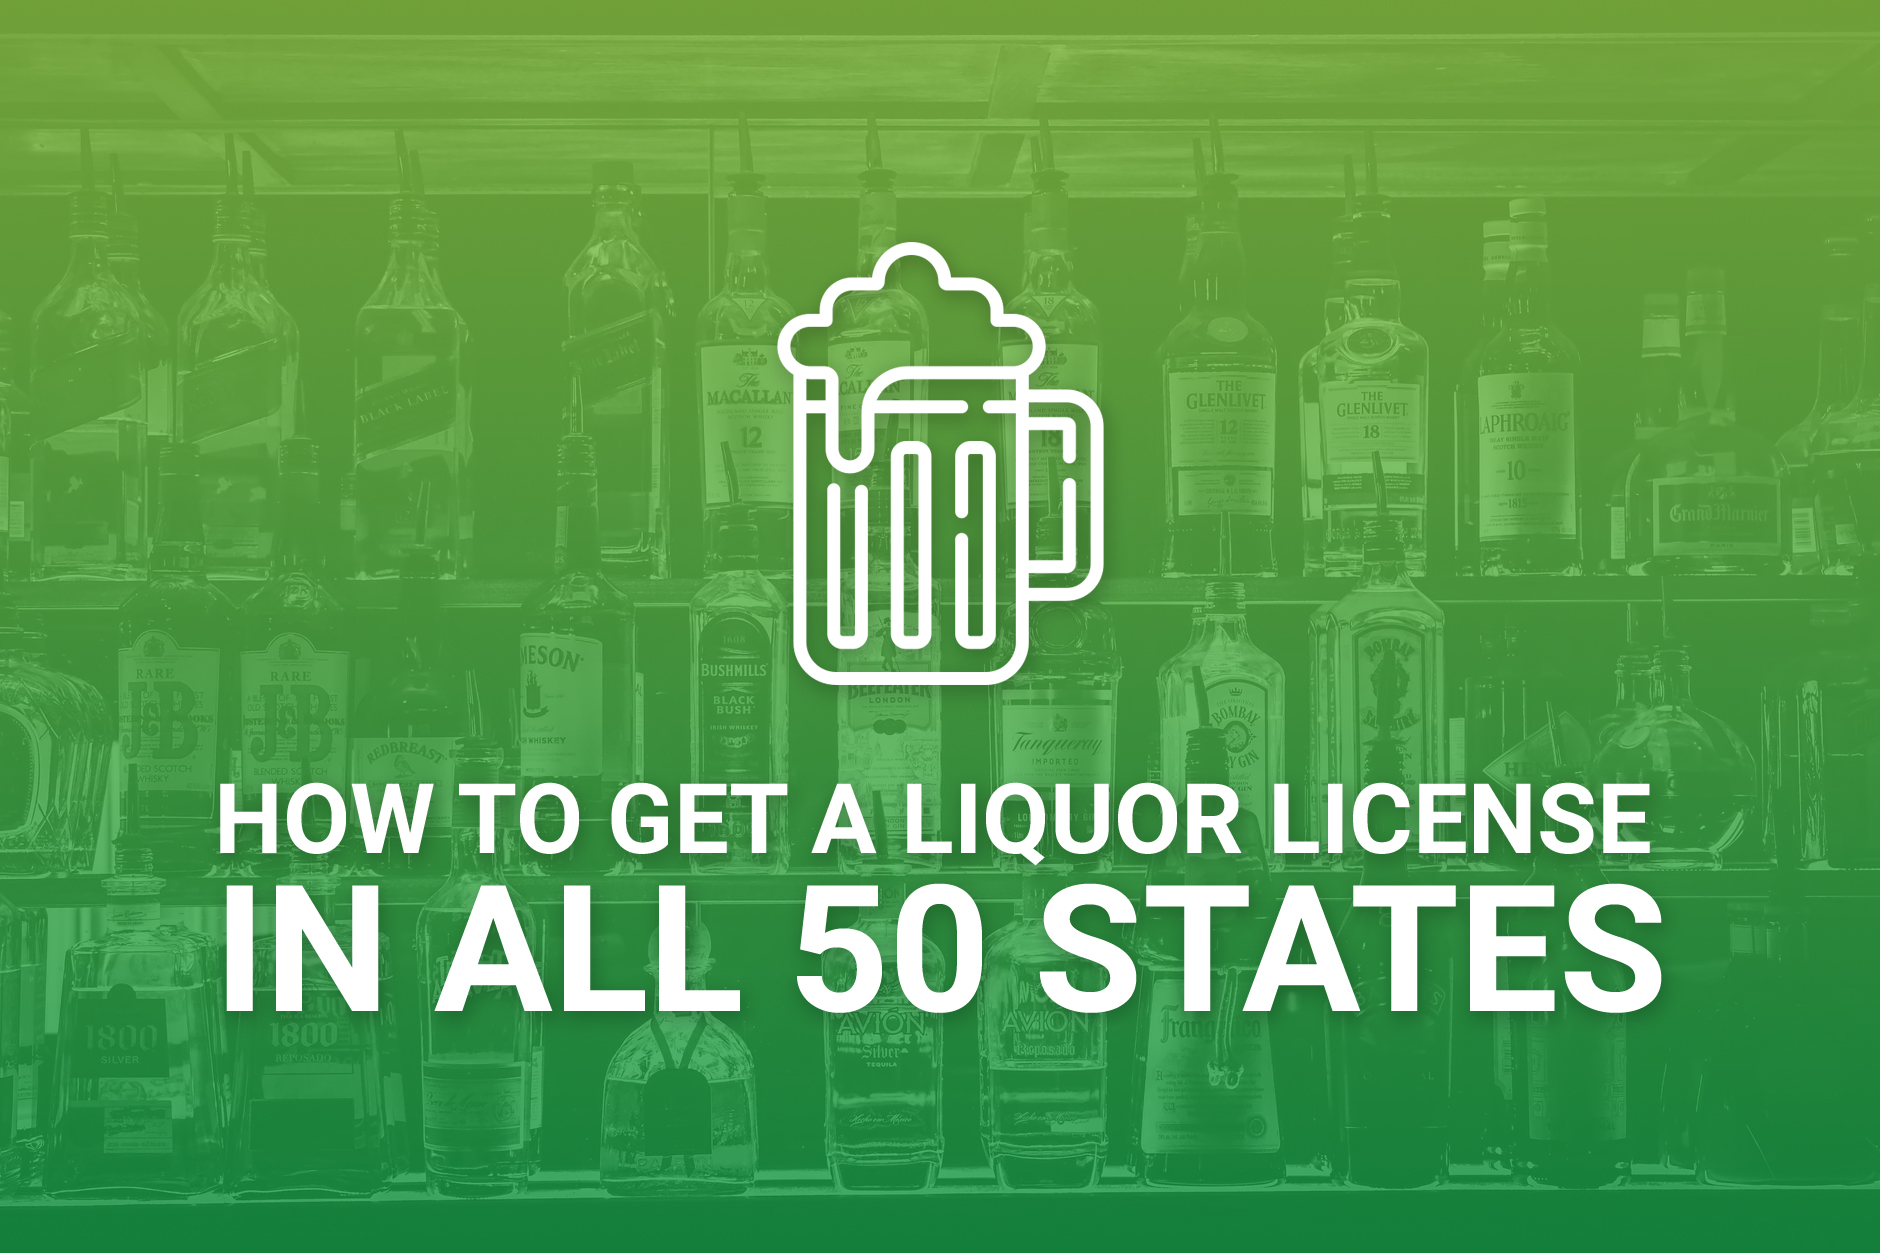 How To Get A Liquor License In All 50 States